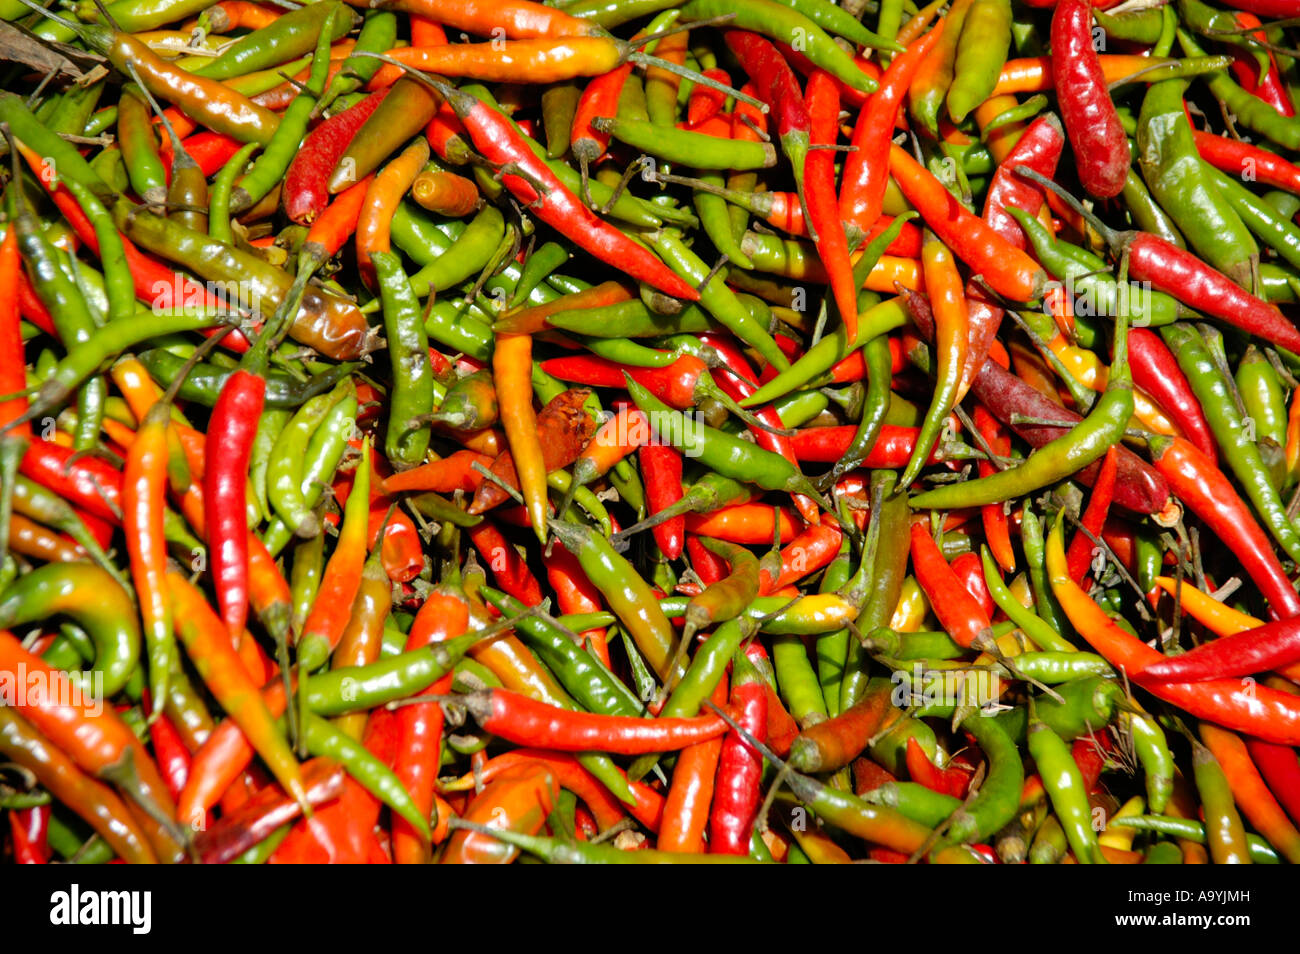 Red and green chili peppers on the market Boditti Ethiopia Stock Photo